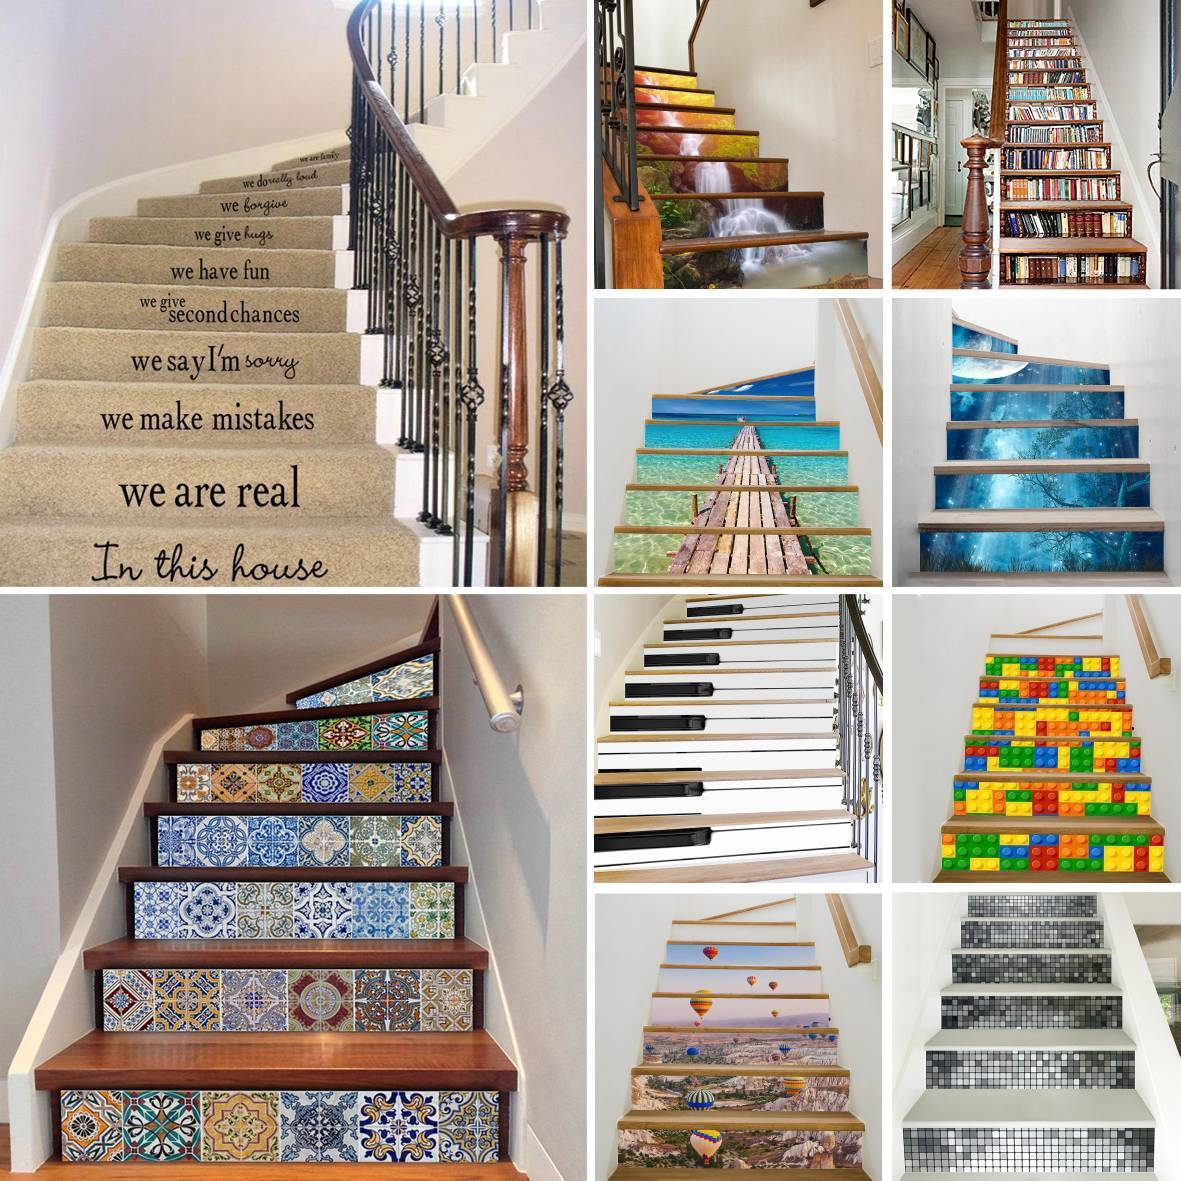 Details about 6 13x 3d stair riser staircase sticker photo mural vinyl decal scenery wallpaper